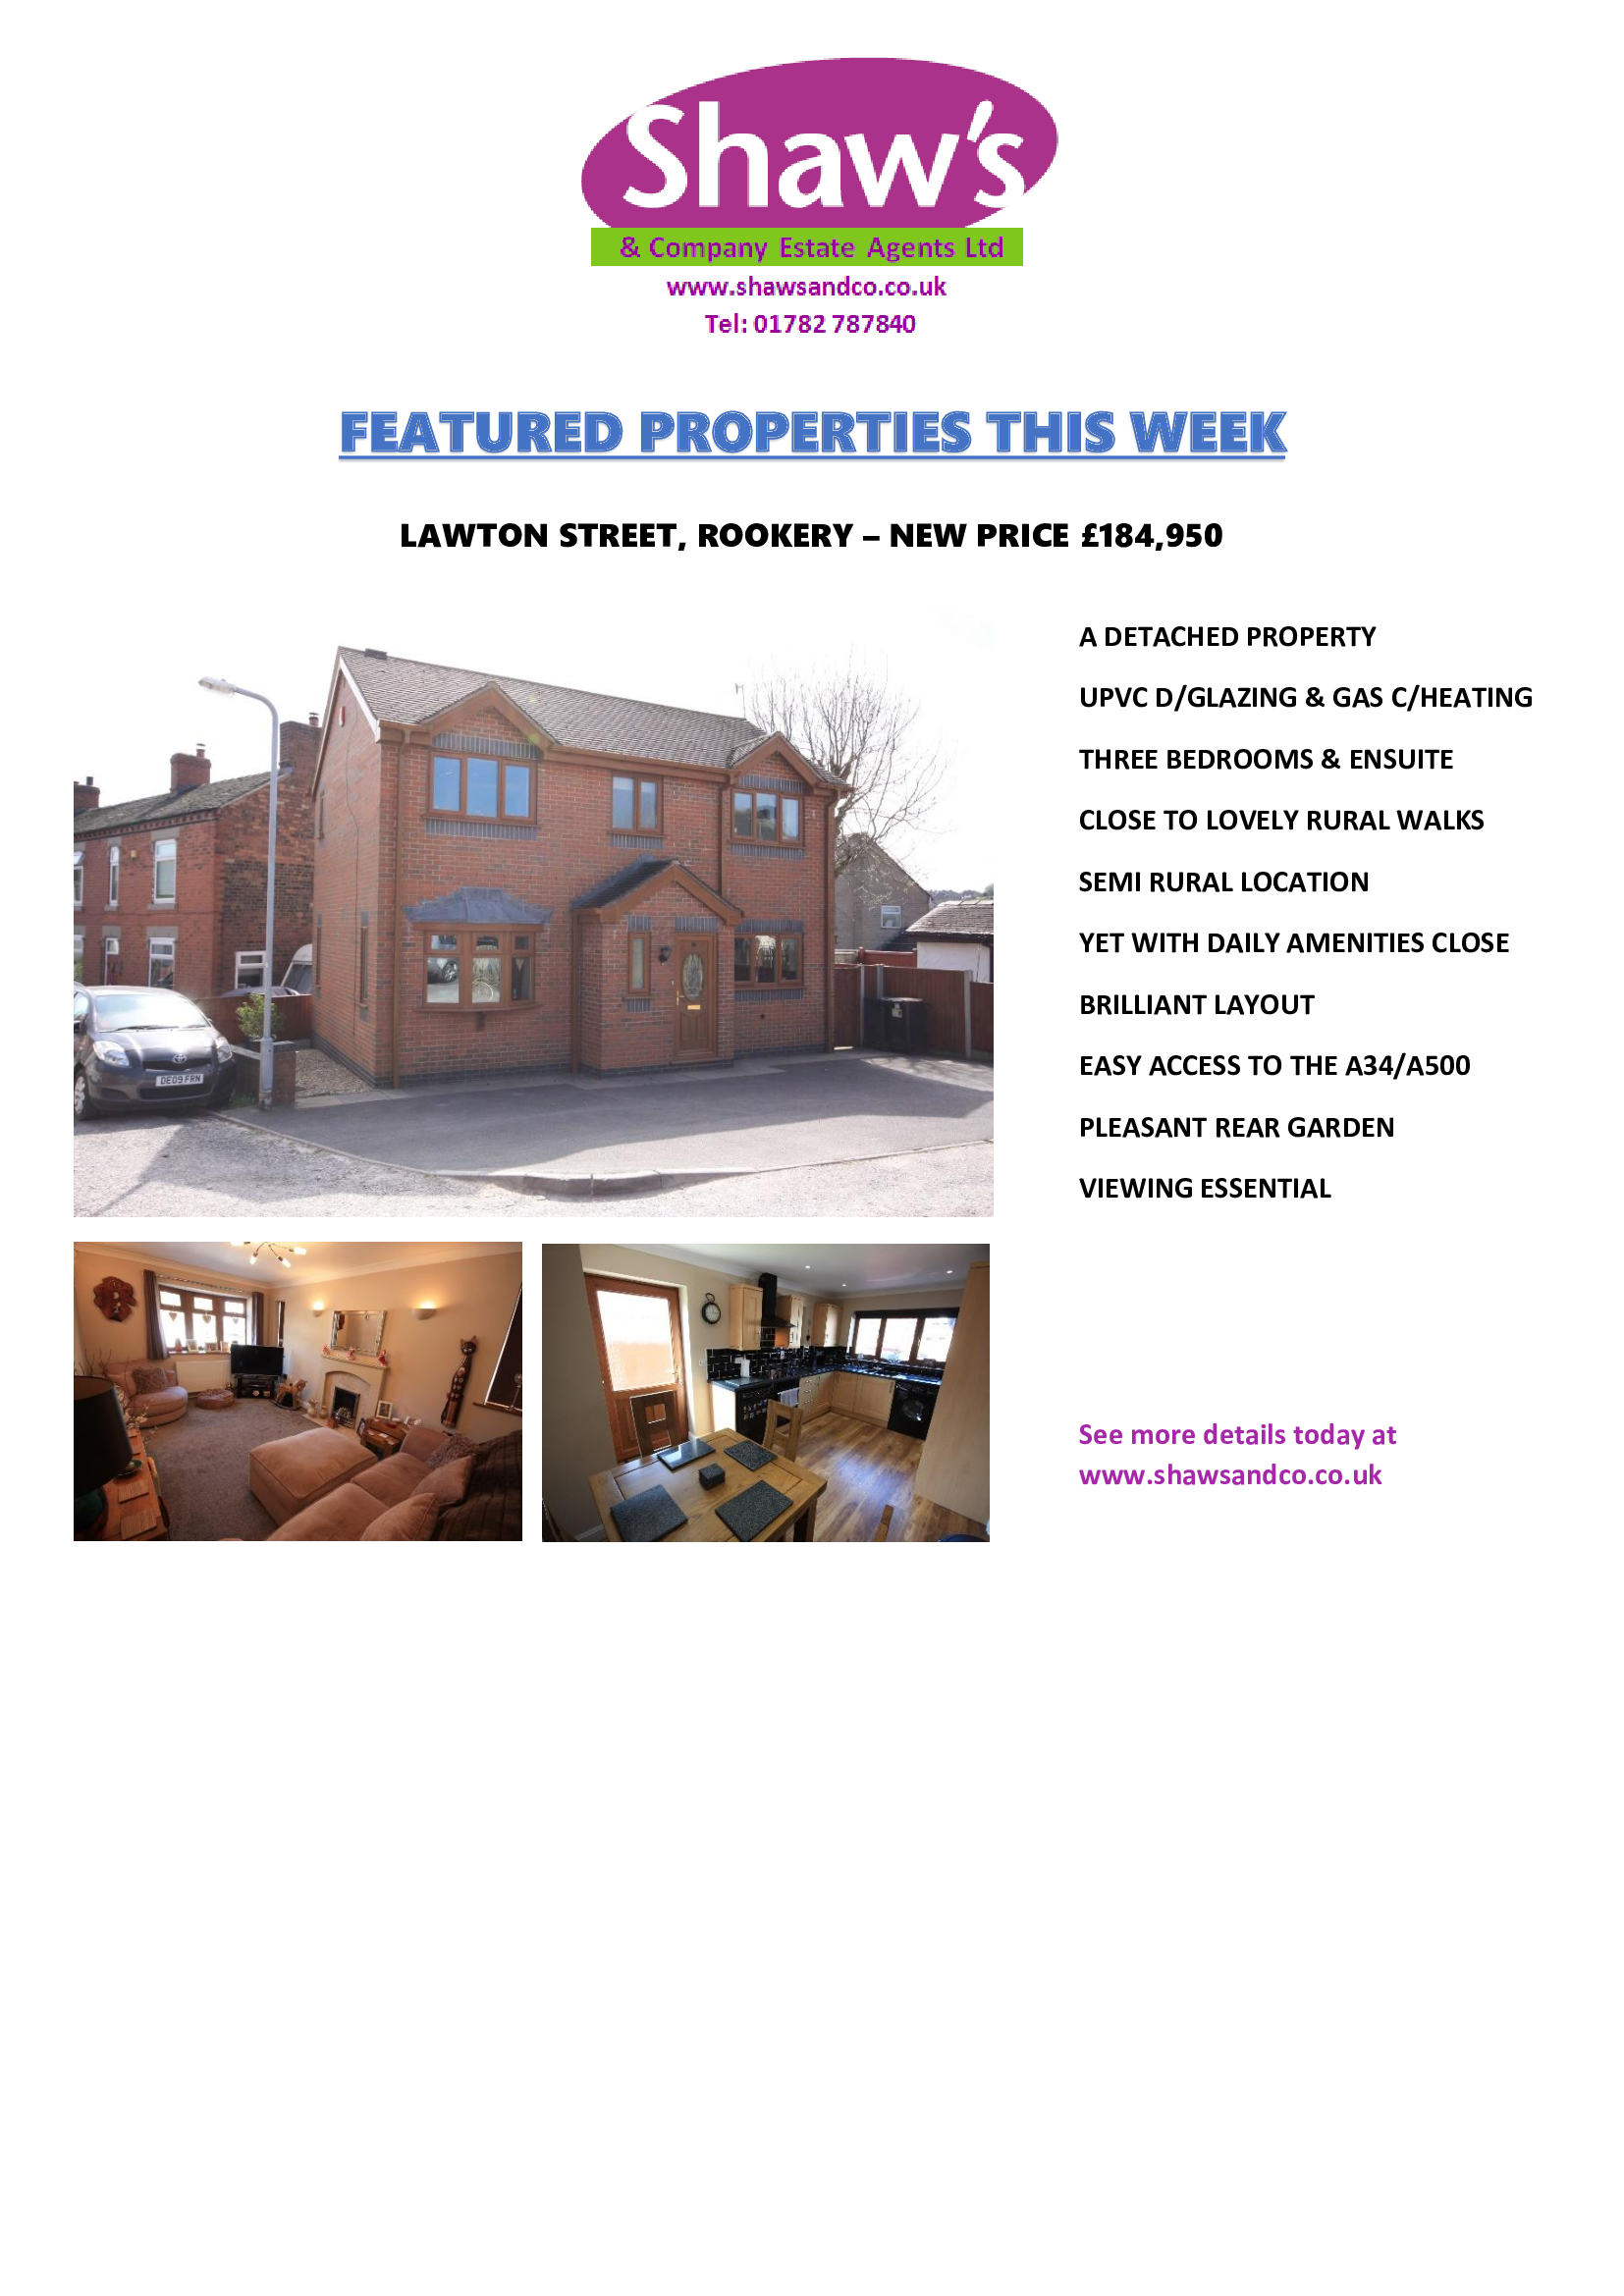 FEATURED PROPERTIES OF THE WEEK!